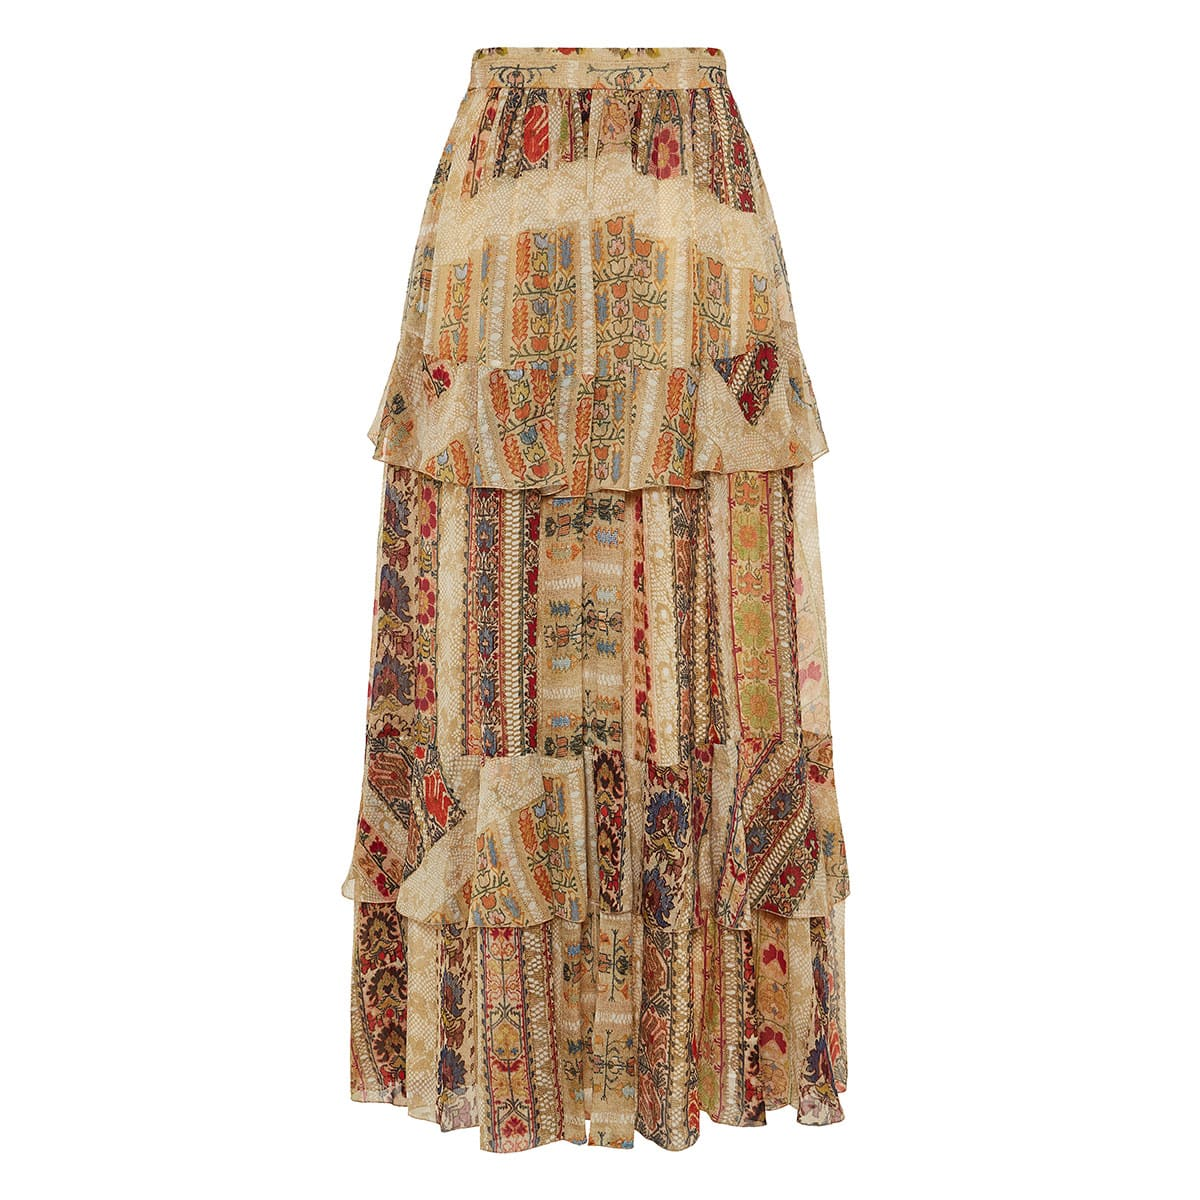 Long printed tiered skirt